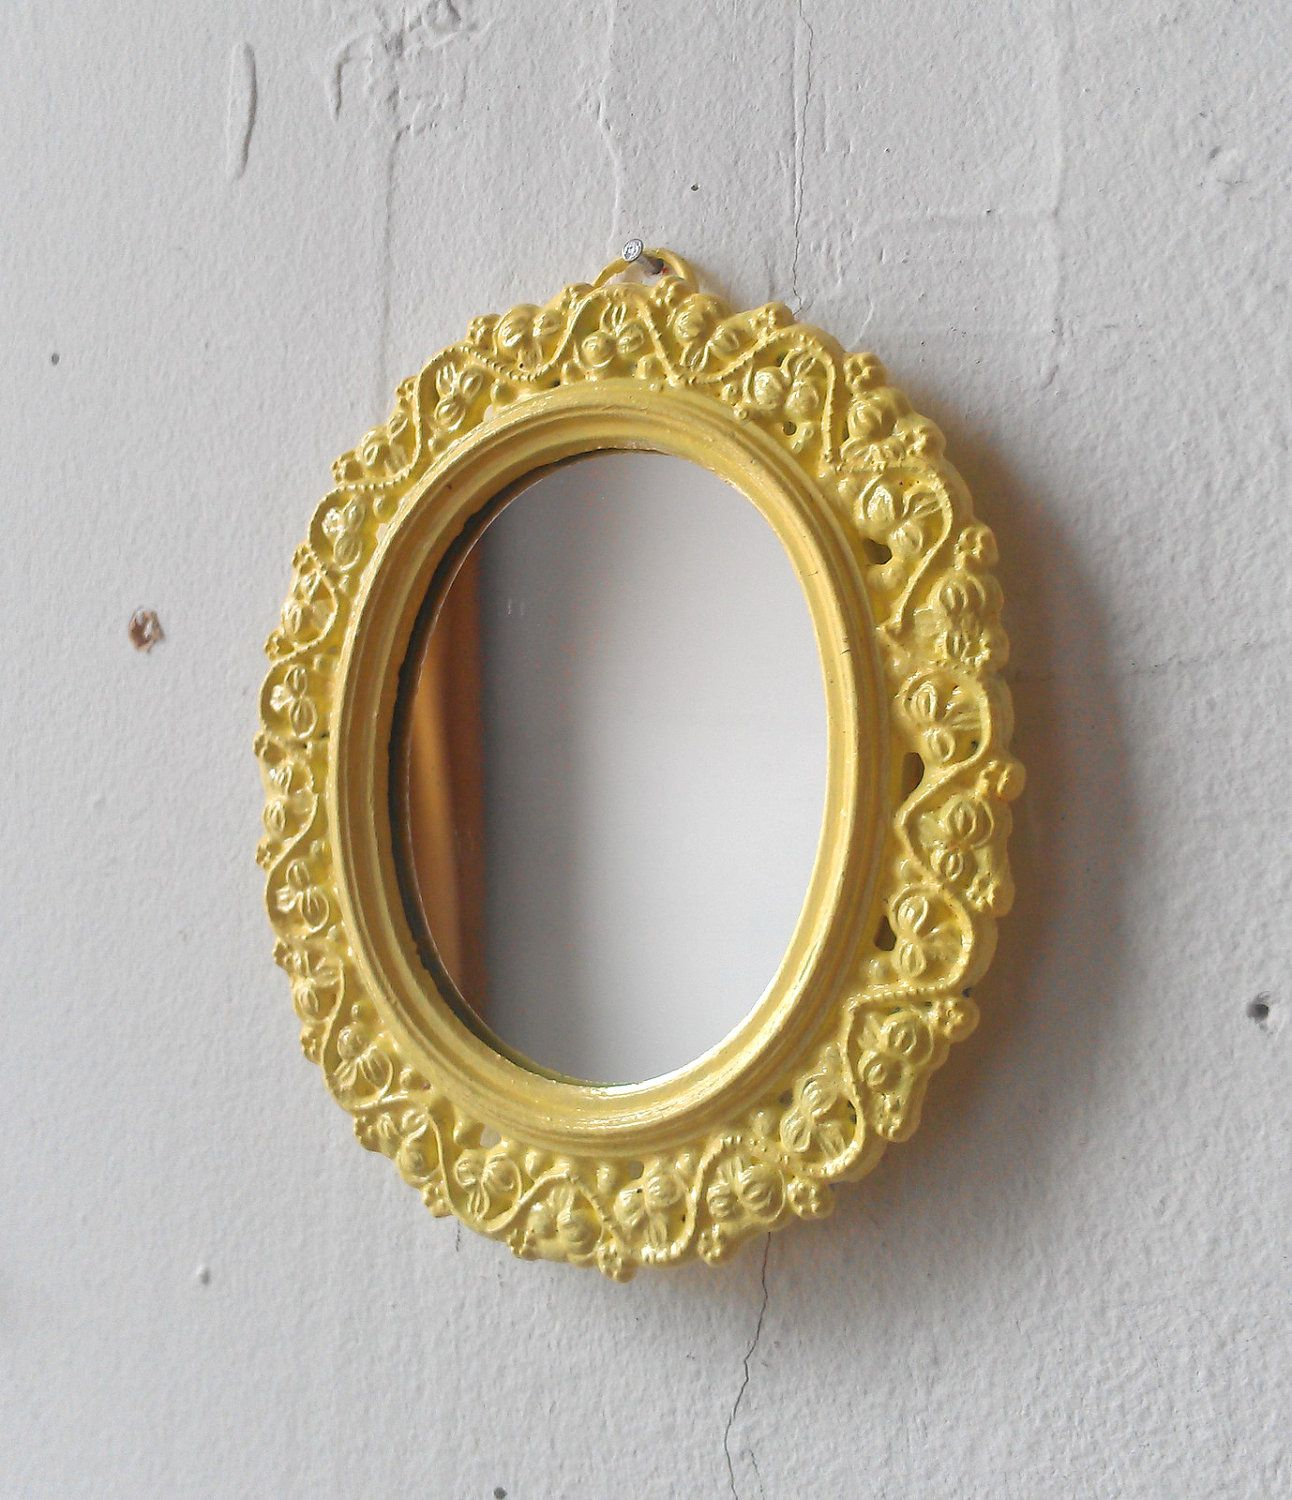 Miniature Wall Mirror in Vintage Butter Yellow Oval Frame | House ...